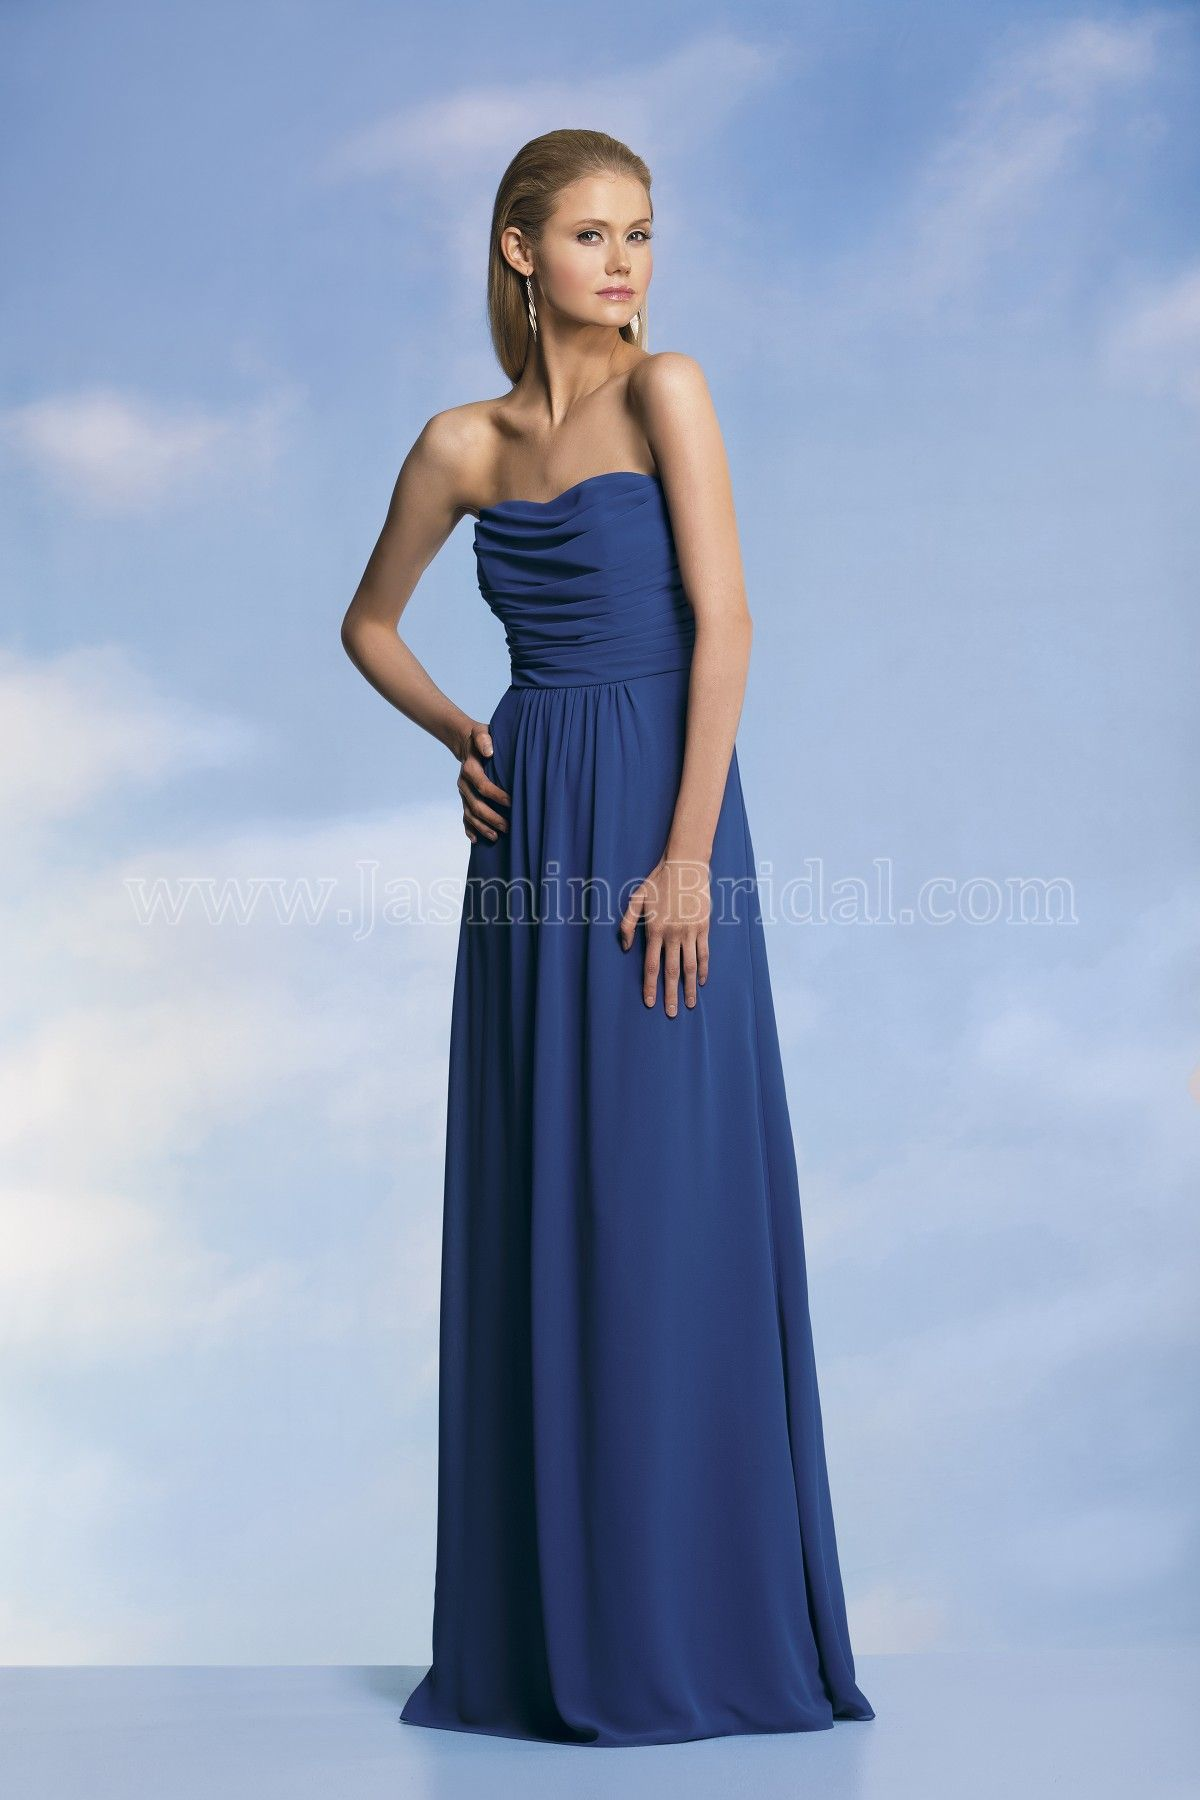 Jasmine bridal bridesmaid dress jasmine bridesmaids style p1760018 jasmine bridal bridesmaid dress jasmine bridesmaids style p1760018 in navy a dress that oozes effortless ombrellifo Images